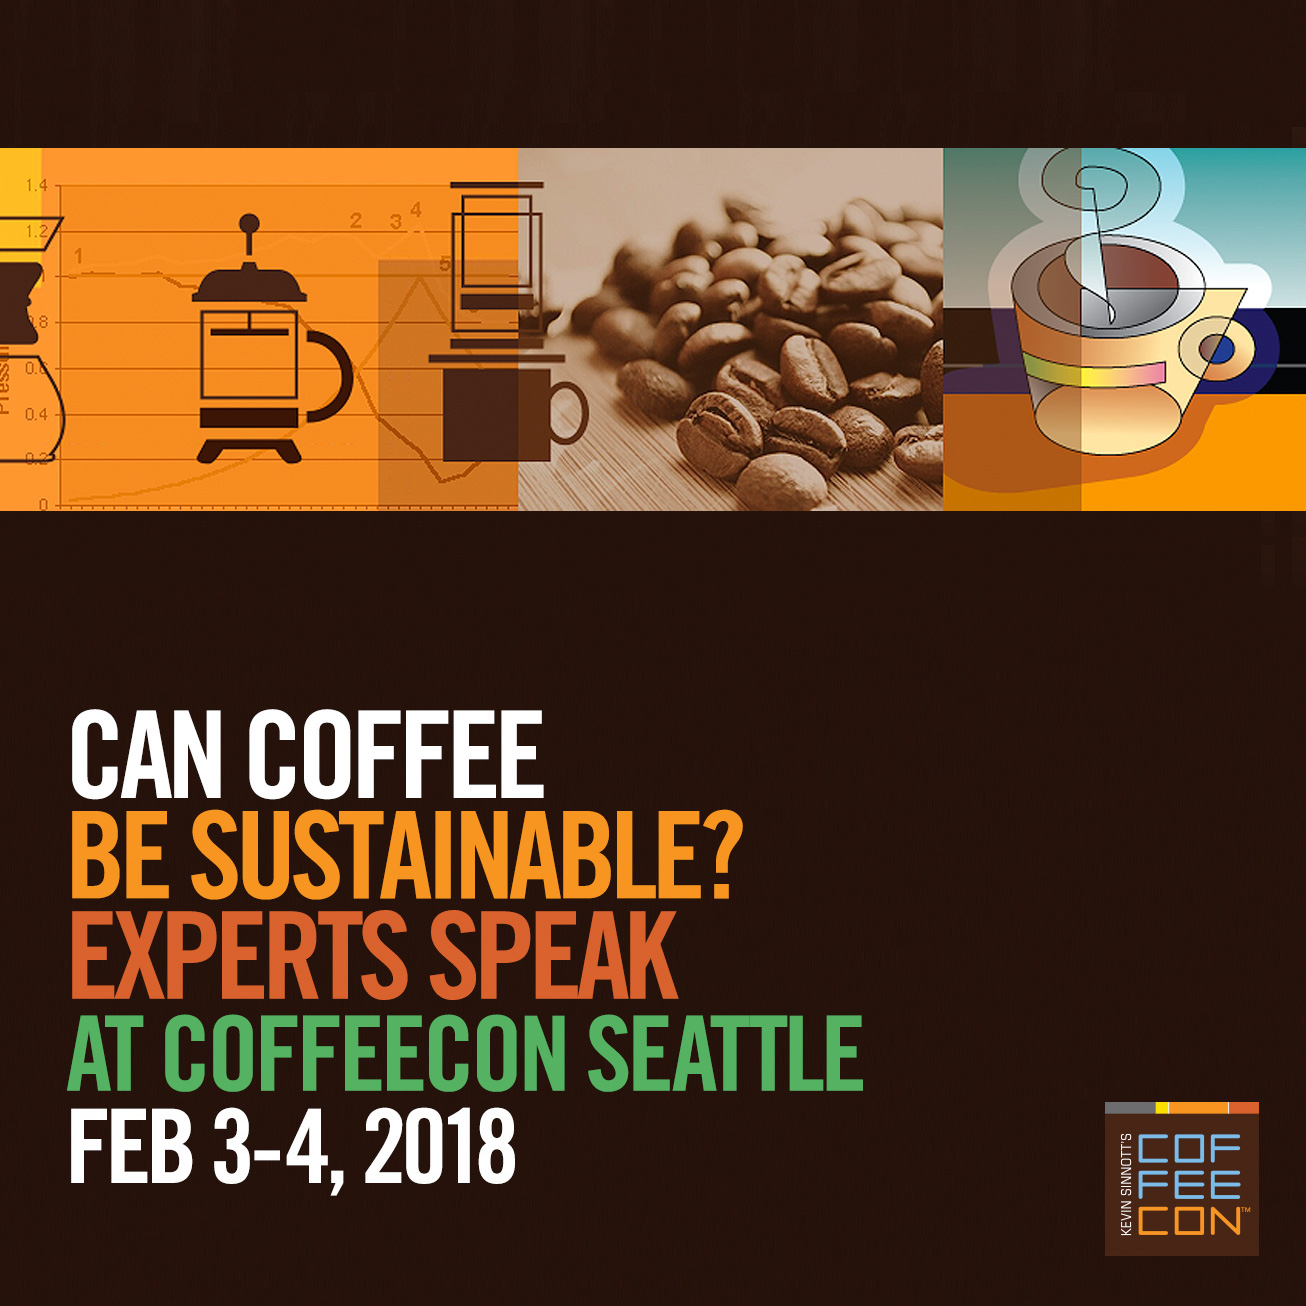 Coffeecon Seattle 2018 Coffee Classes Making Class Intro Can Be Sustainable